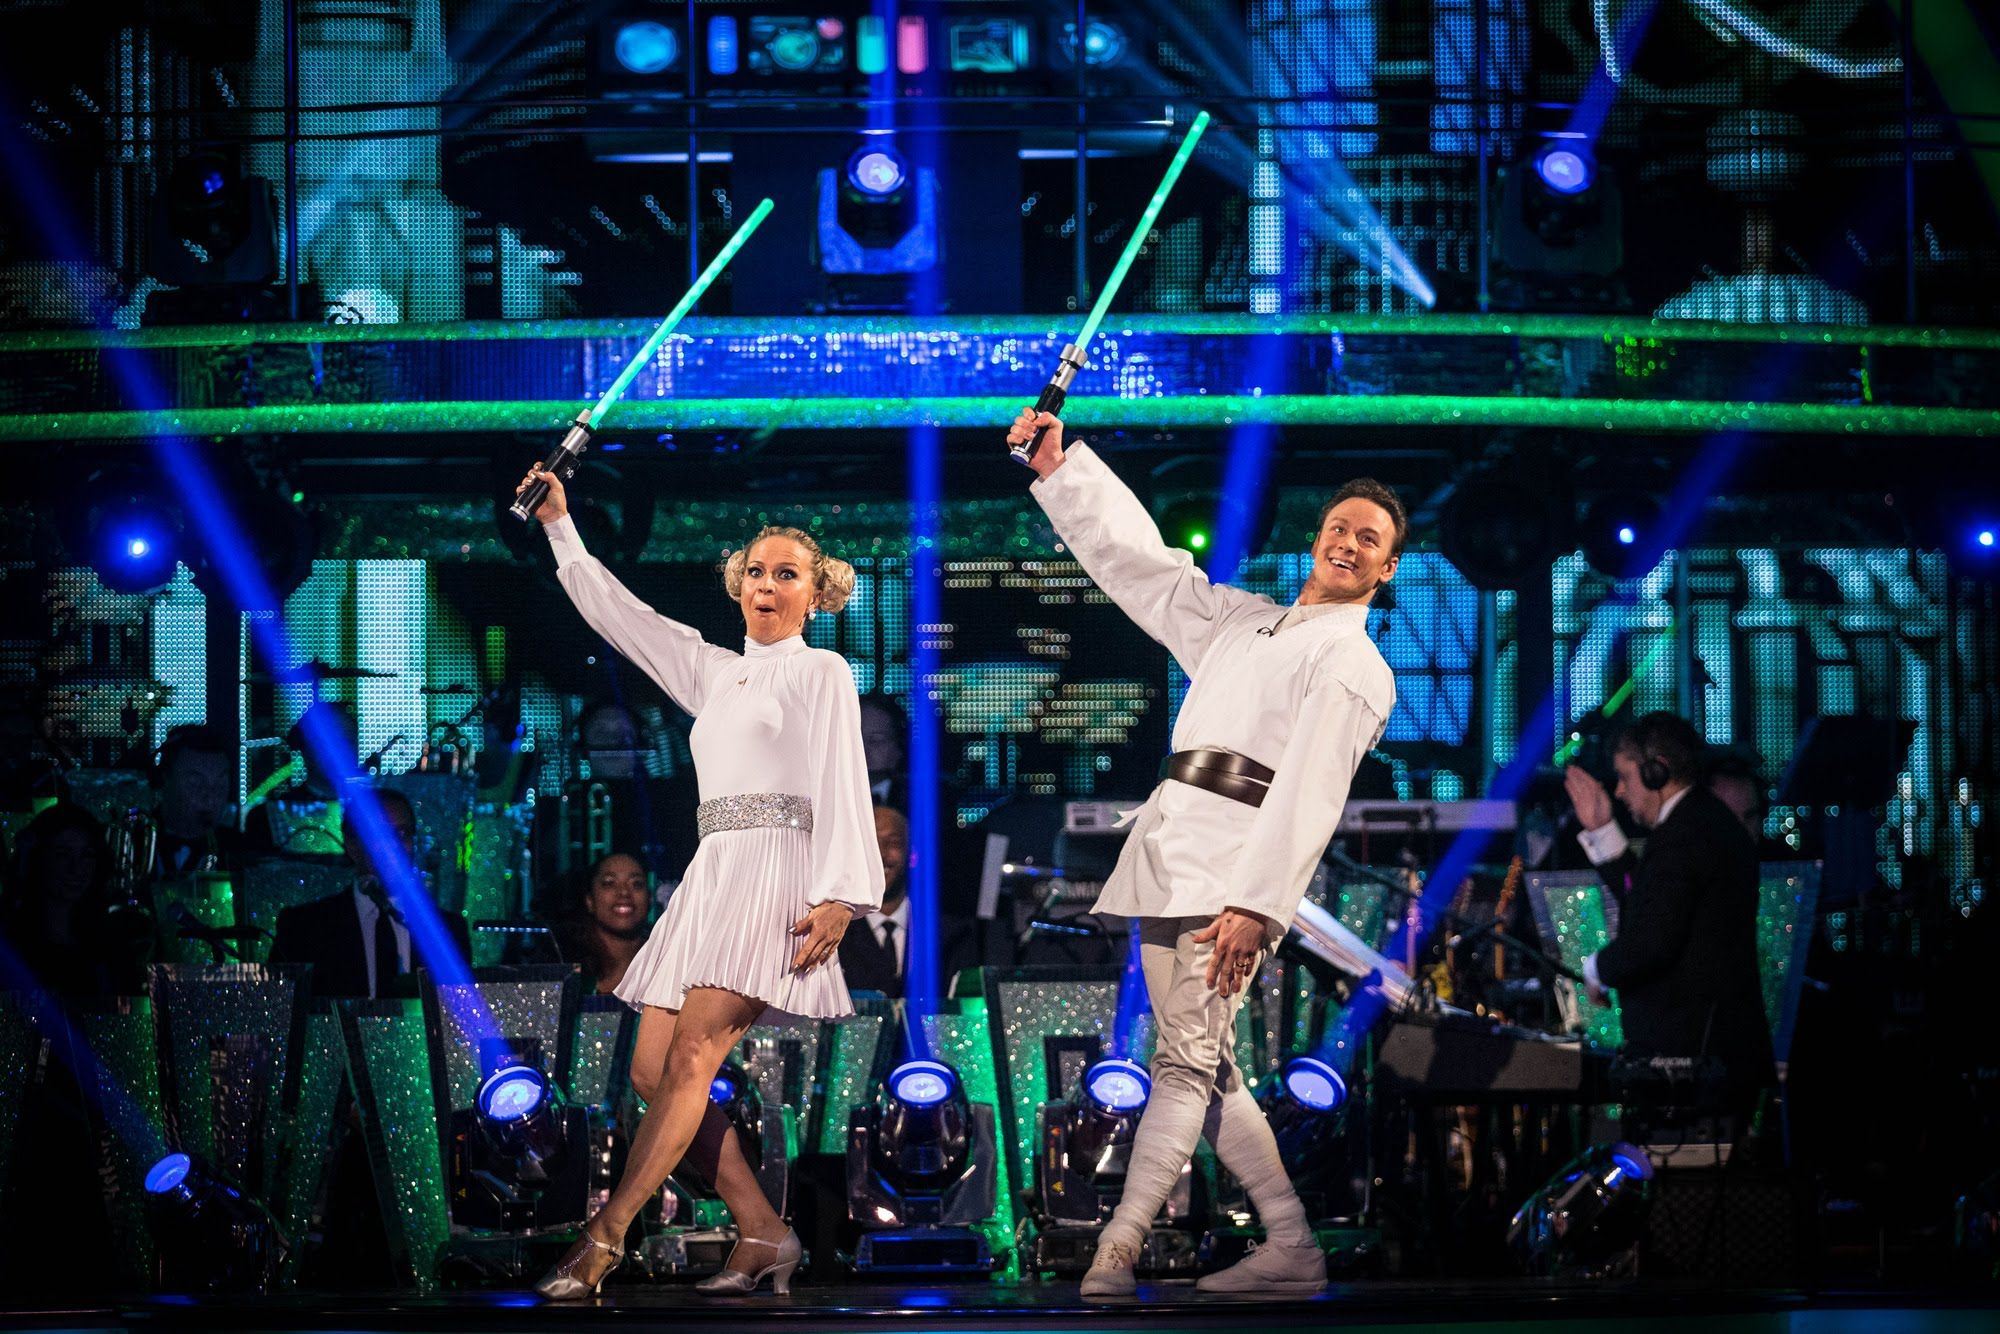 Kellie Bright Kevin Clifton Charleston To Star Wars Cantina Strictly Come Dancing 2015 Strictly Come Dancing Dance Kellie Bright